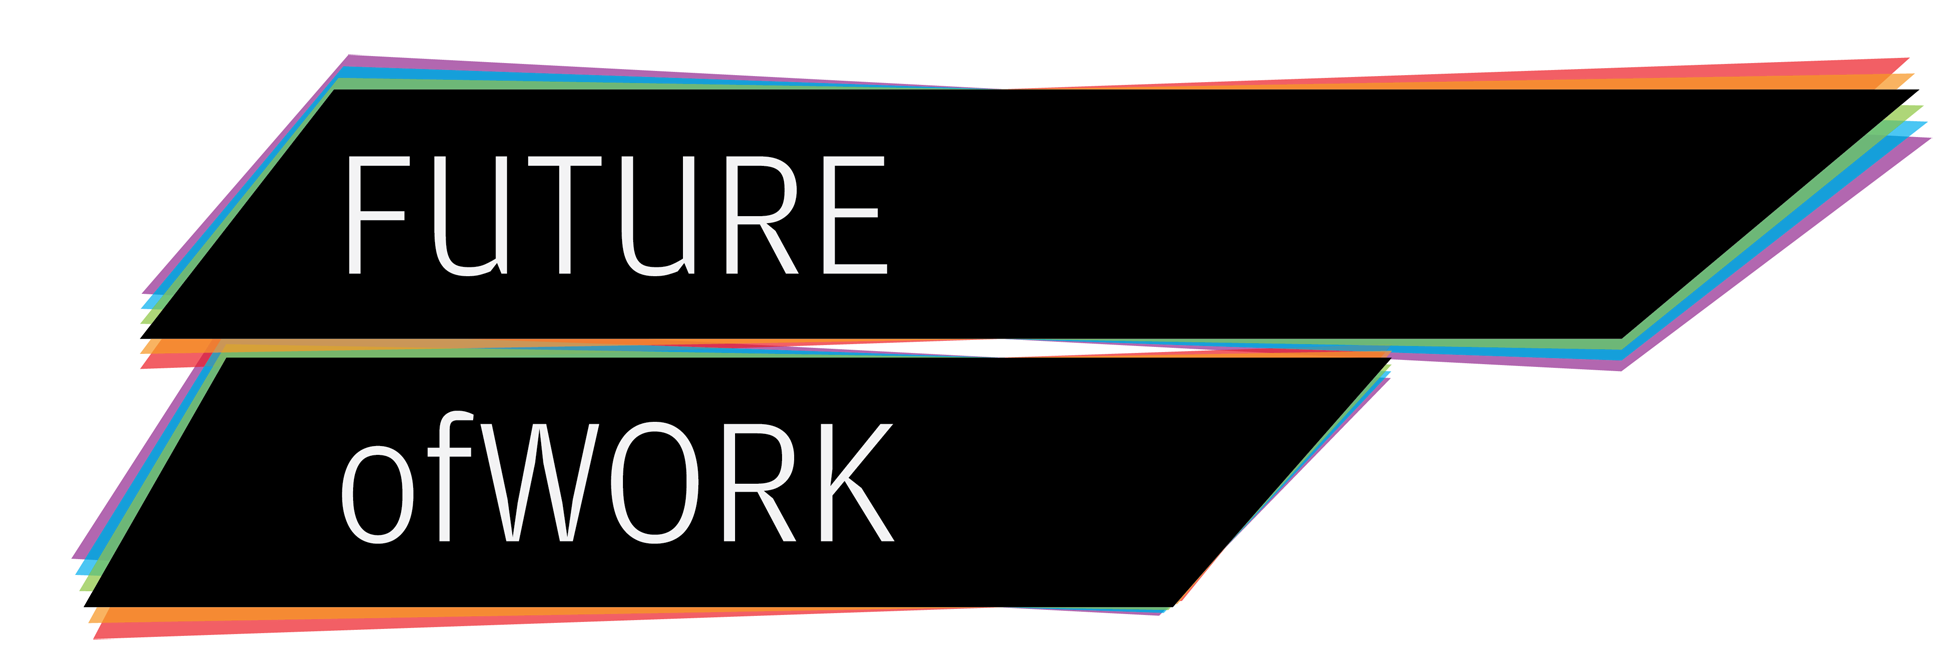 Future of Work Consortium|WORKSTYLE RESEARCH LAB.|ワークスタイルケンキュウジョ.